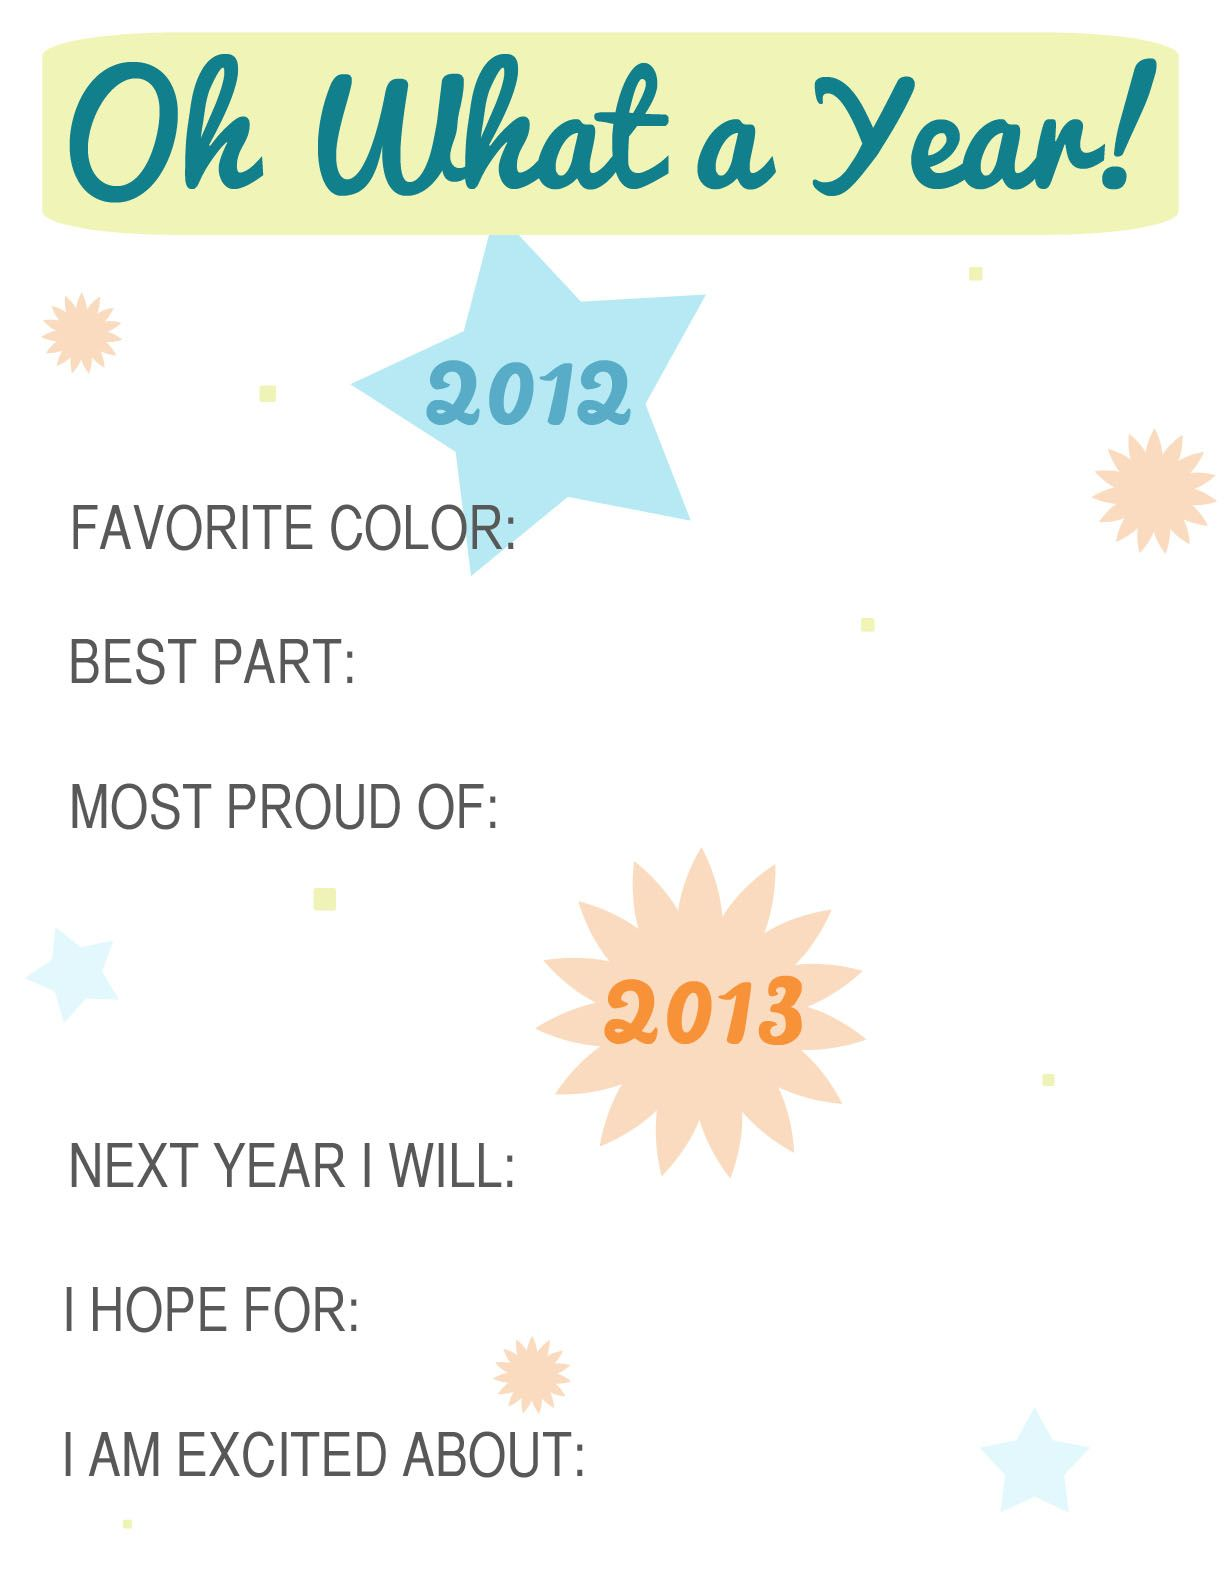 New Years Eve Reflection Sheet For Kids From Allisa Jacobs